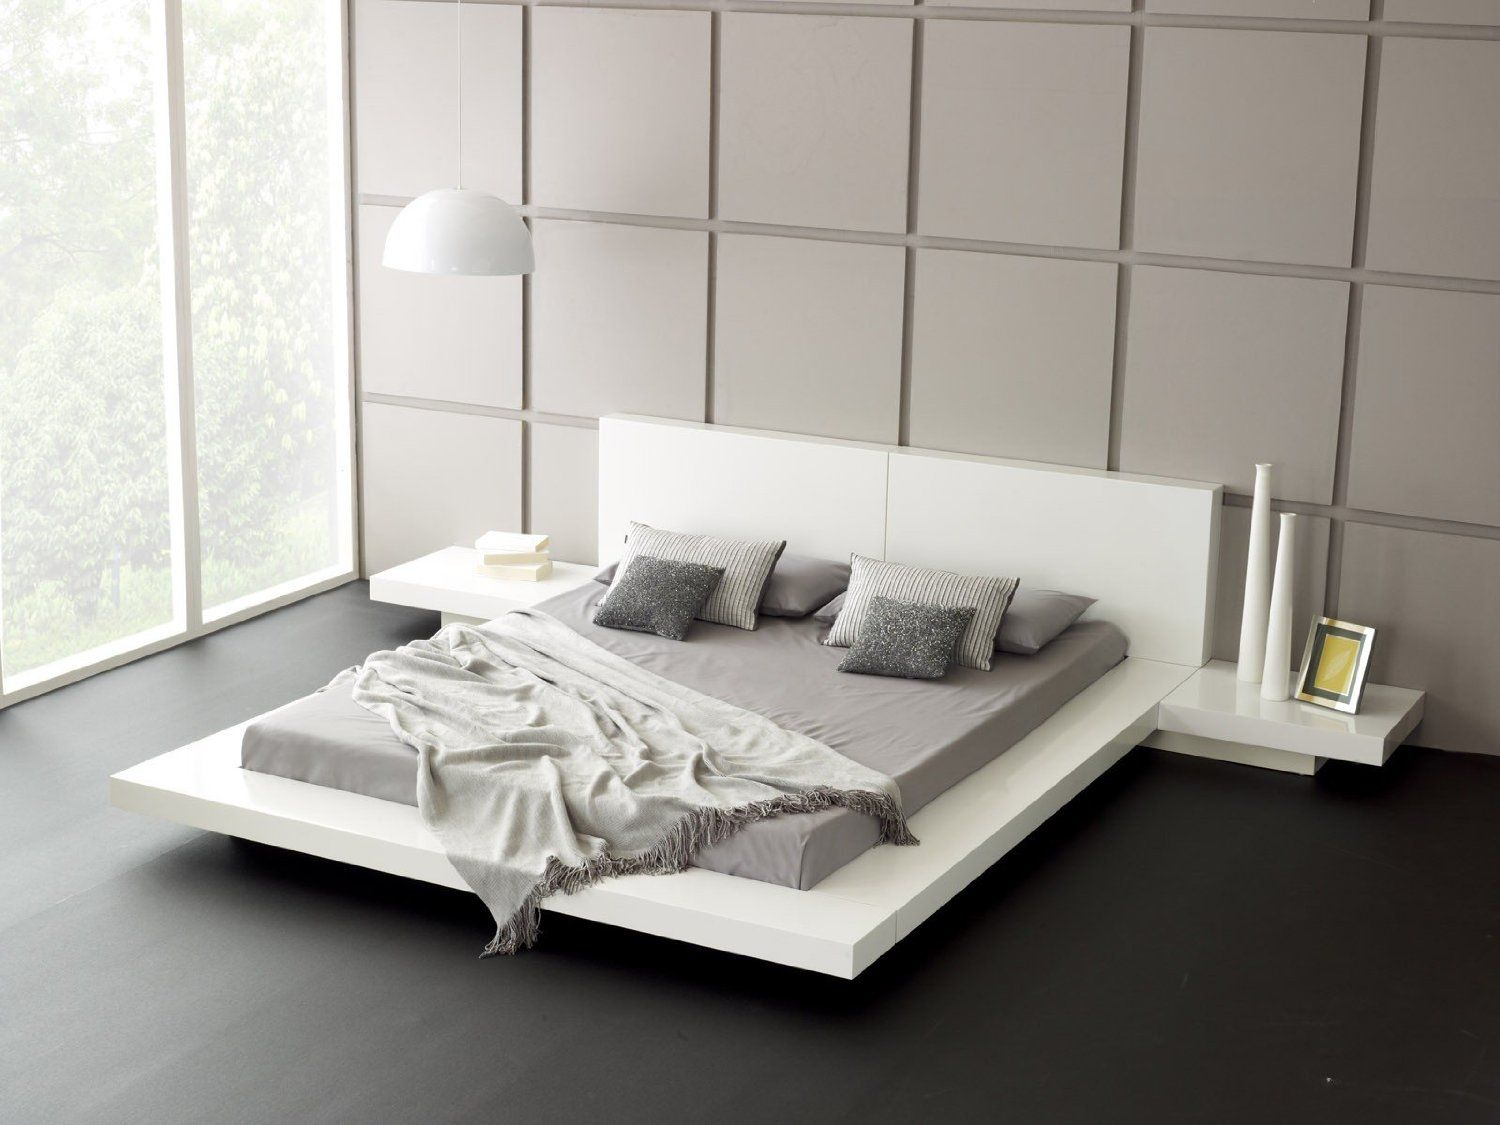 Amazon.com: Fujian Modern Platform Bed + 2 Night Stands Queen (Ash ...